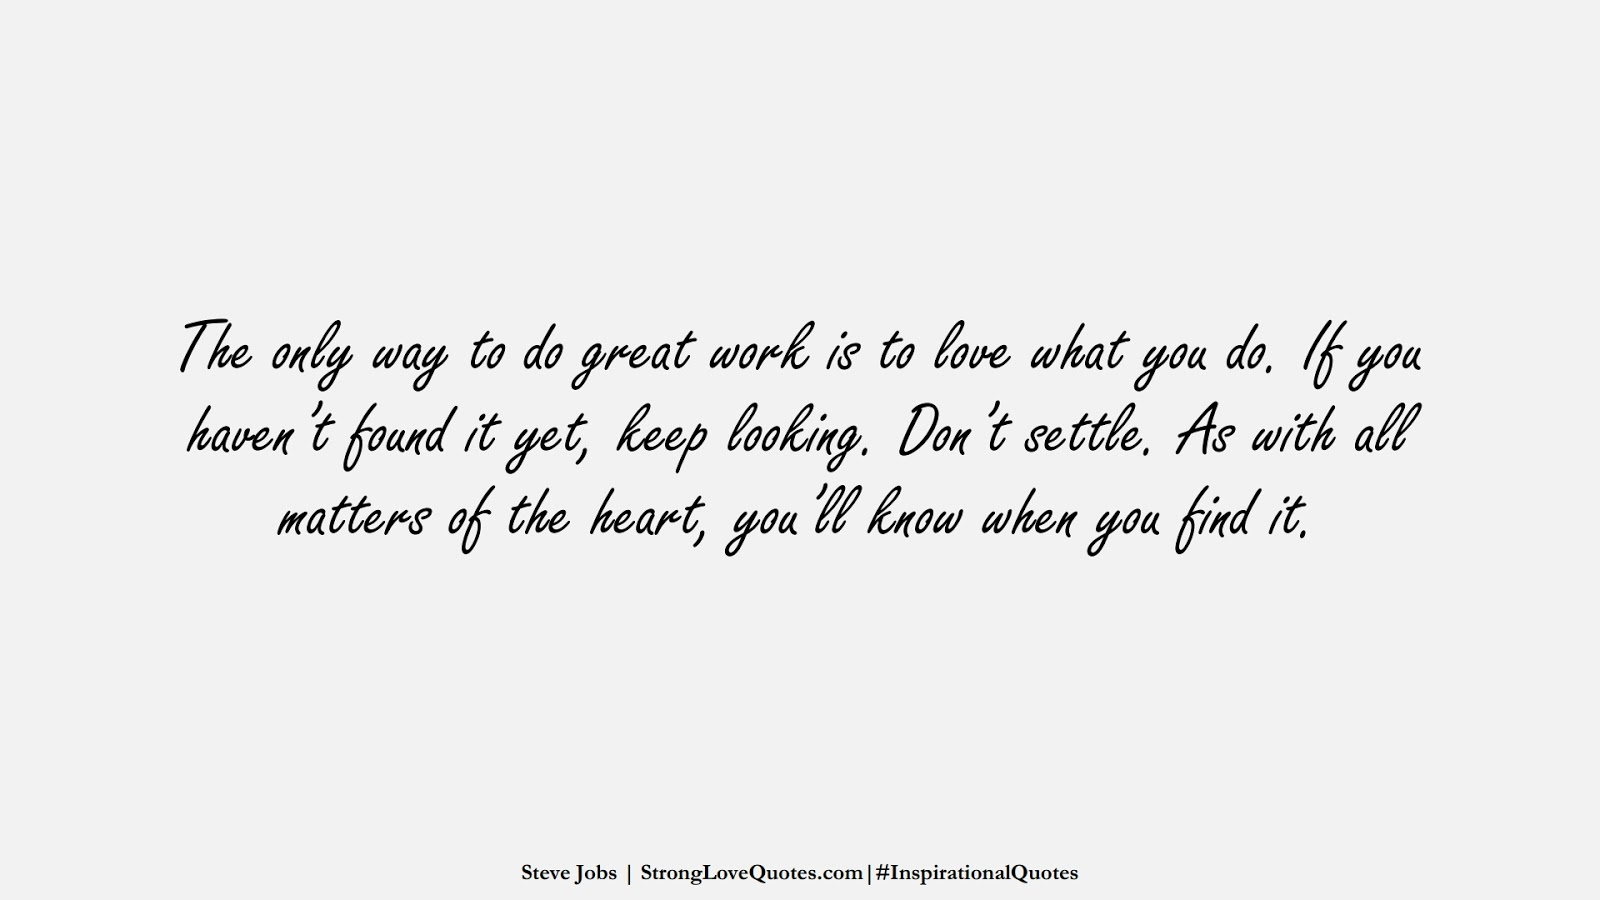 The only way to do great work is to love what you do. If you haven't found it yet, keep looking. Don't settle. As with all matters of the heart, you'll know when you find it. (Steve Jobs);  #InspirationalQuotes